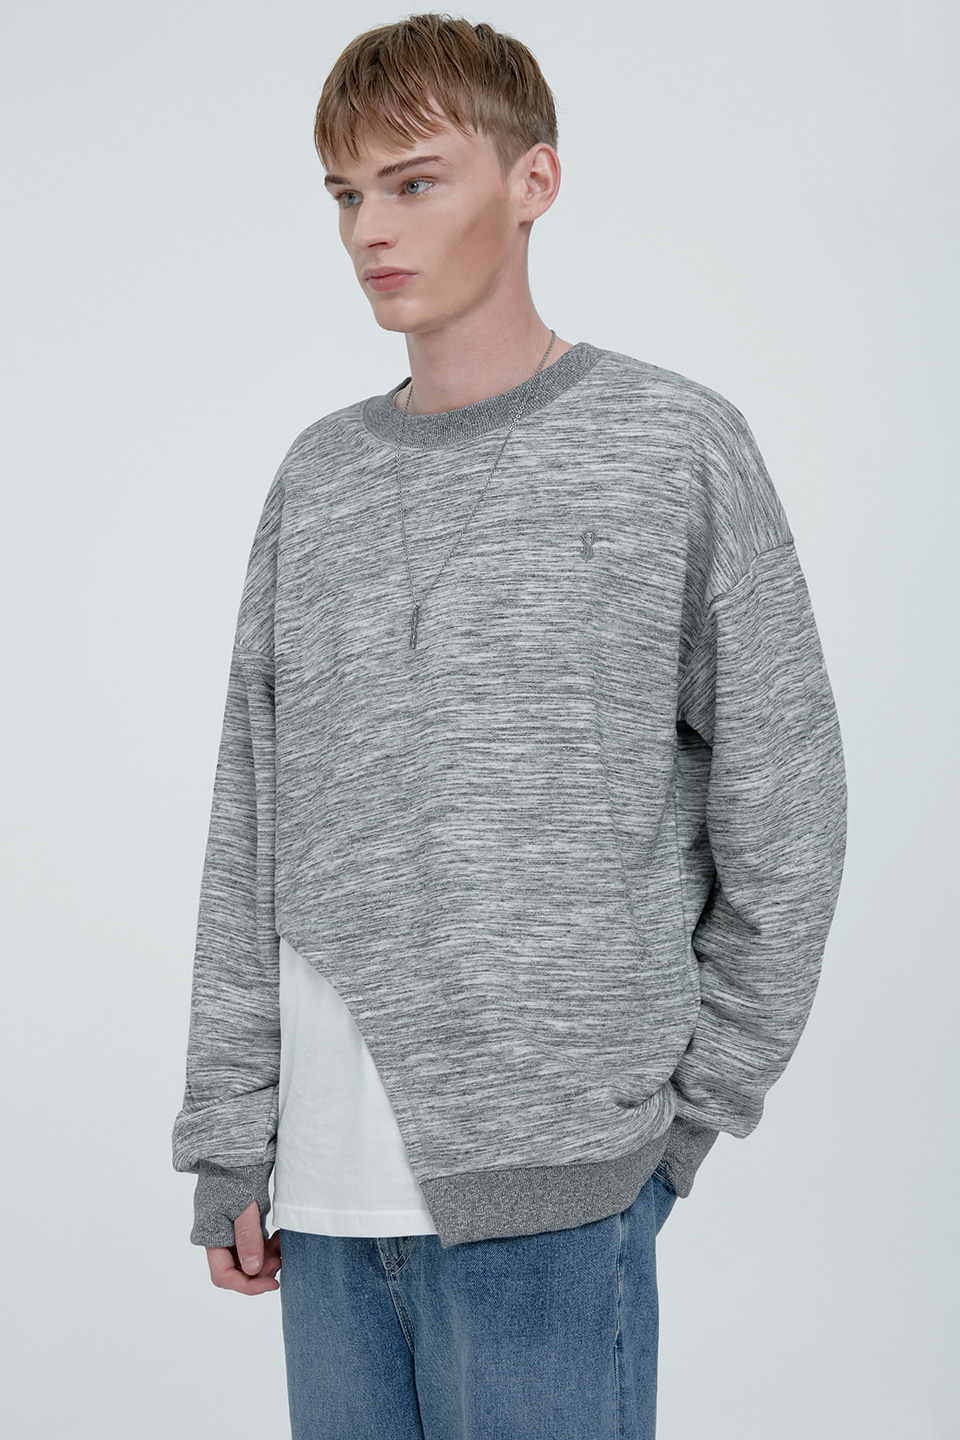 [UNISEX] VINTAGE LINE CUT LAYERED SWEATSHIRT - GREY